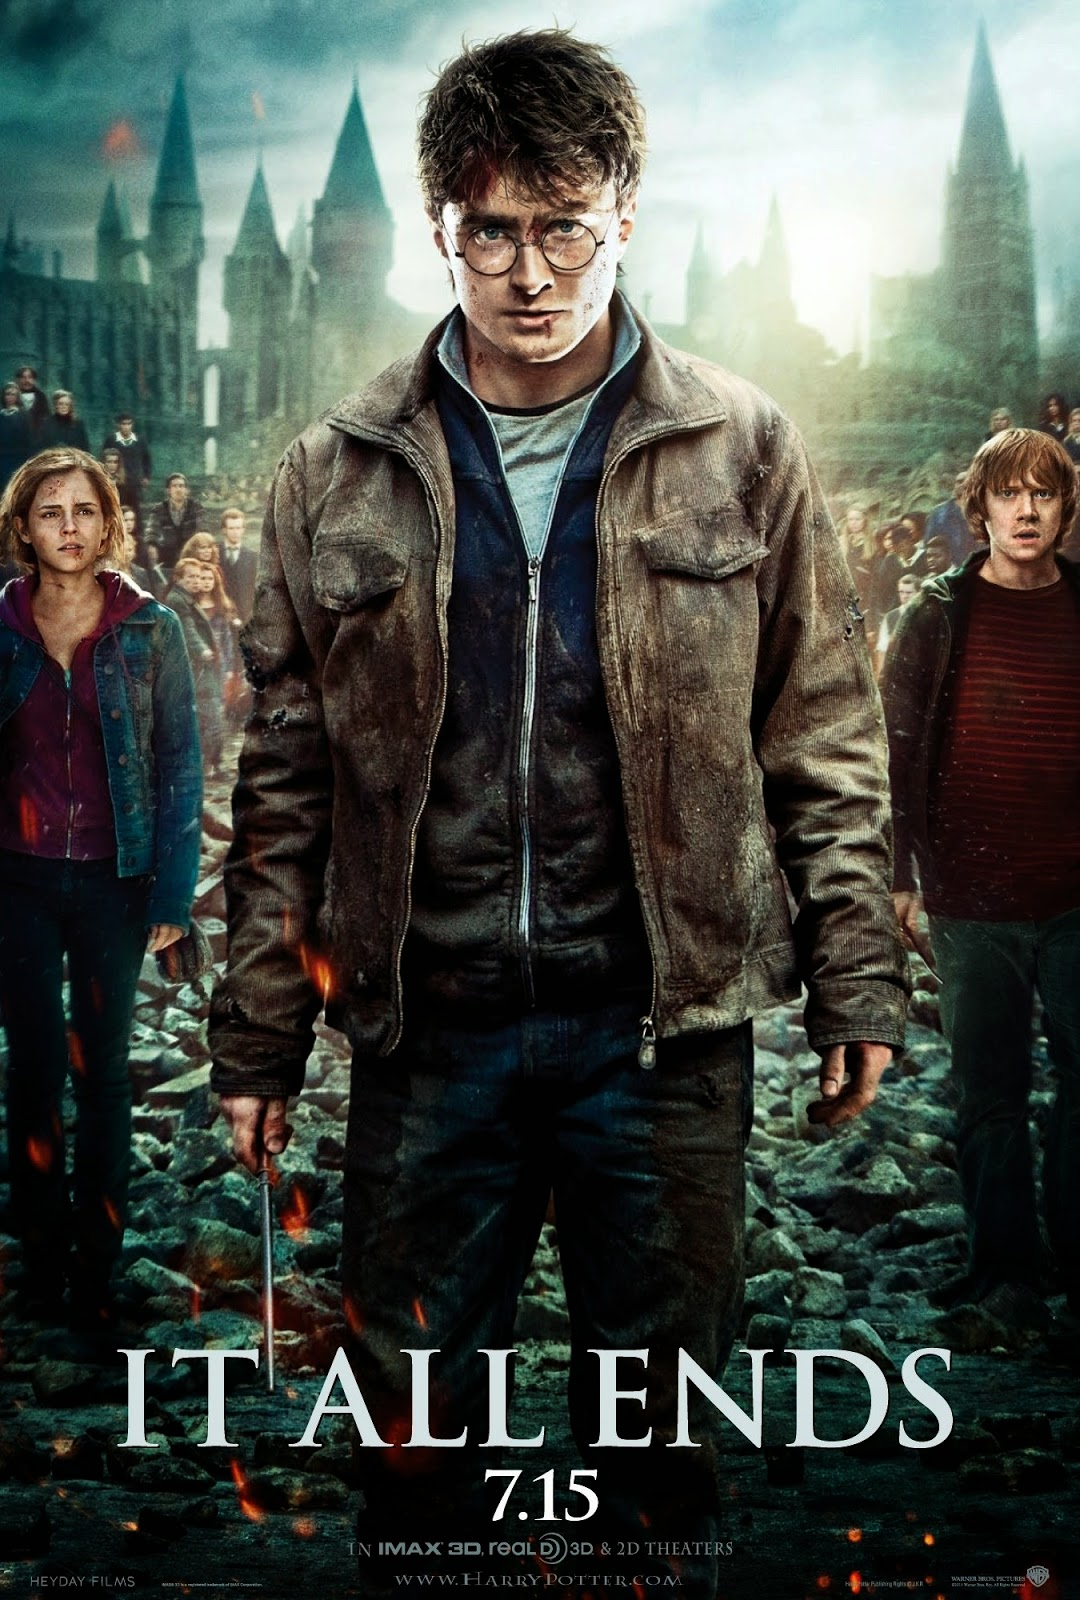 thesis statement on harry potter Daniel radcliffe in harry potter and the deathly hallows: part 2  i t all ends, says the poster slogan a potentially grim statement of the obvious, .